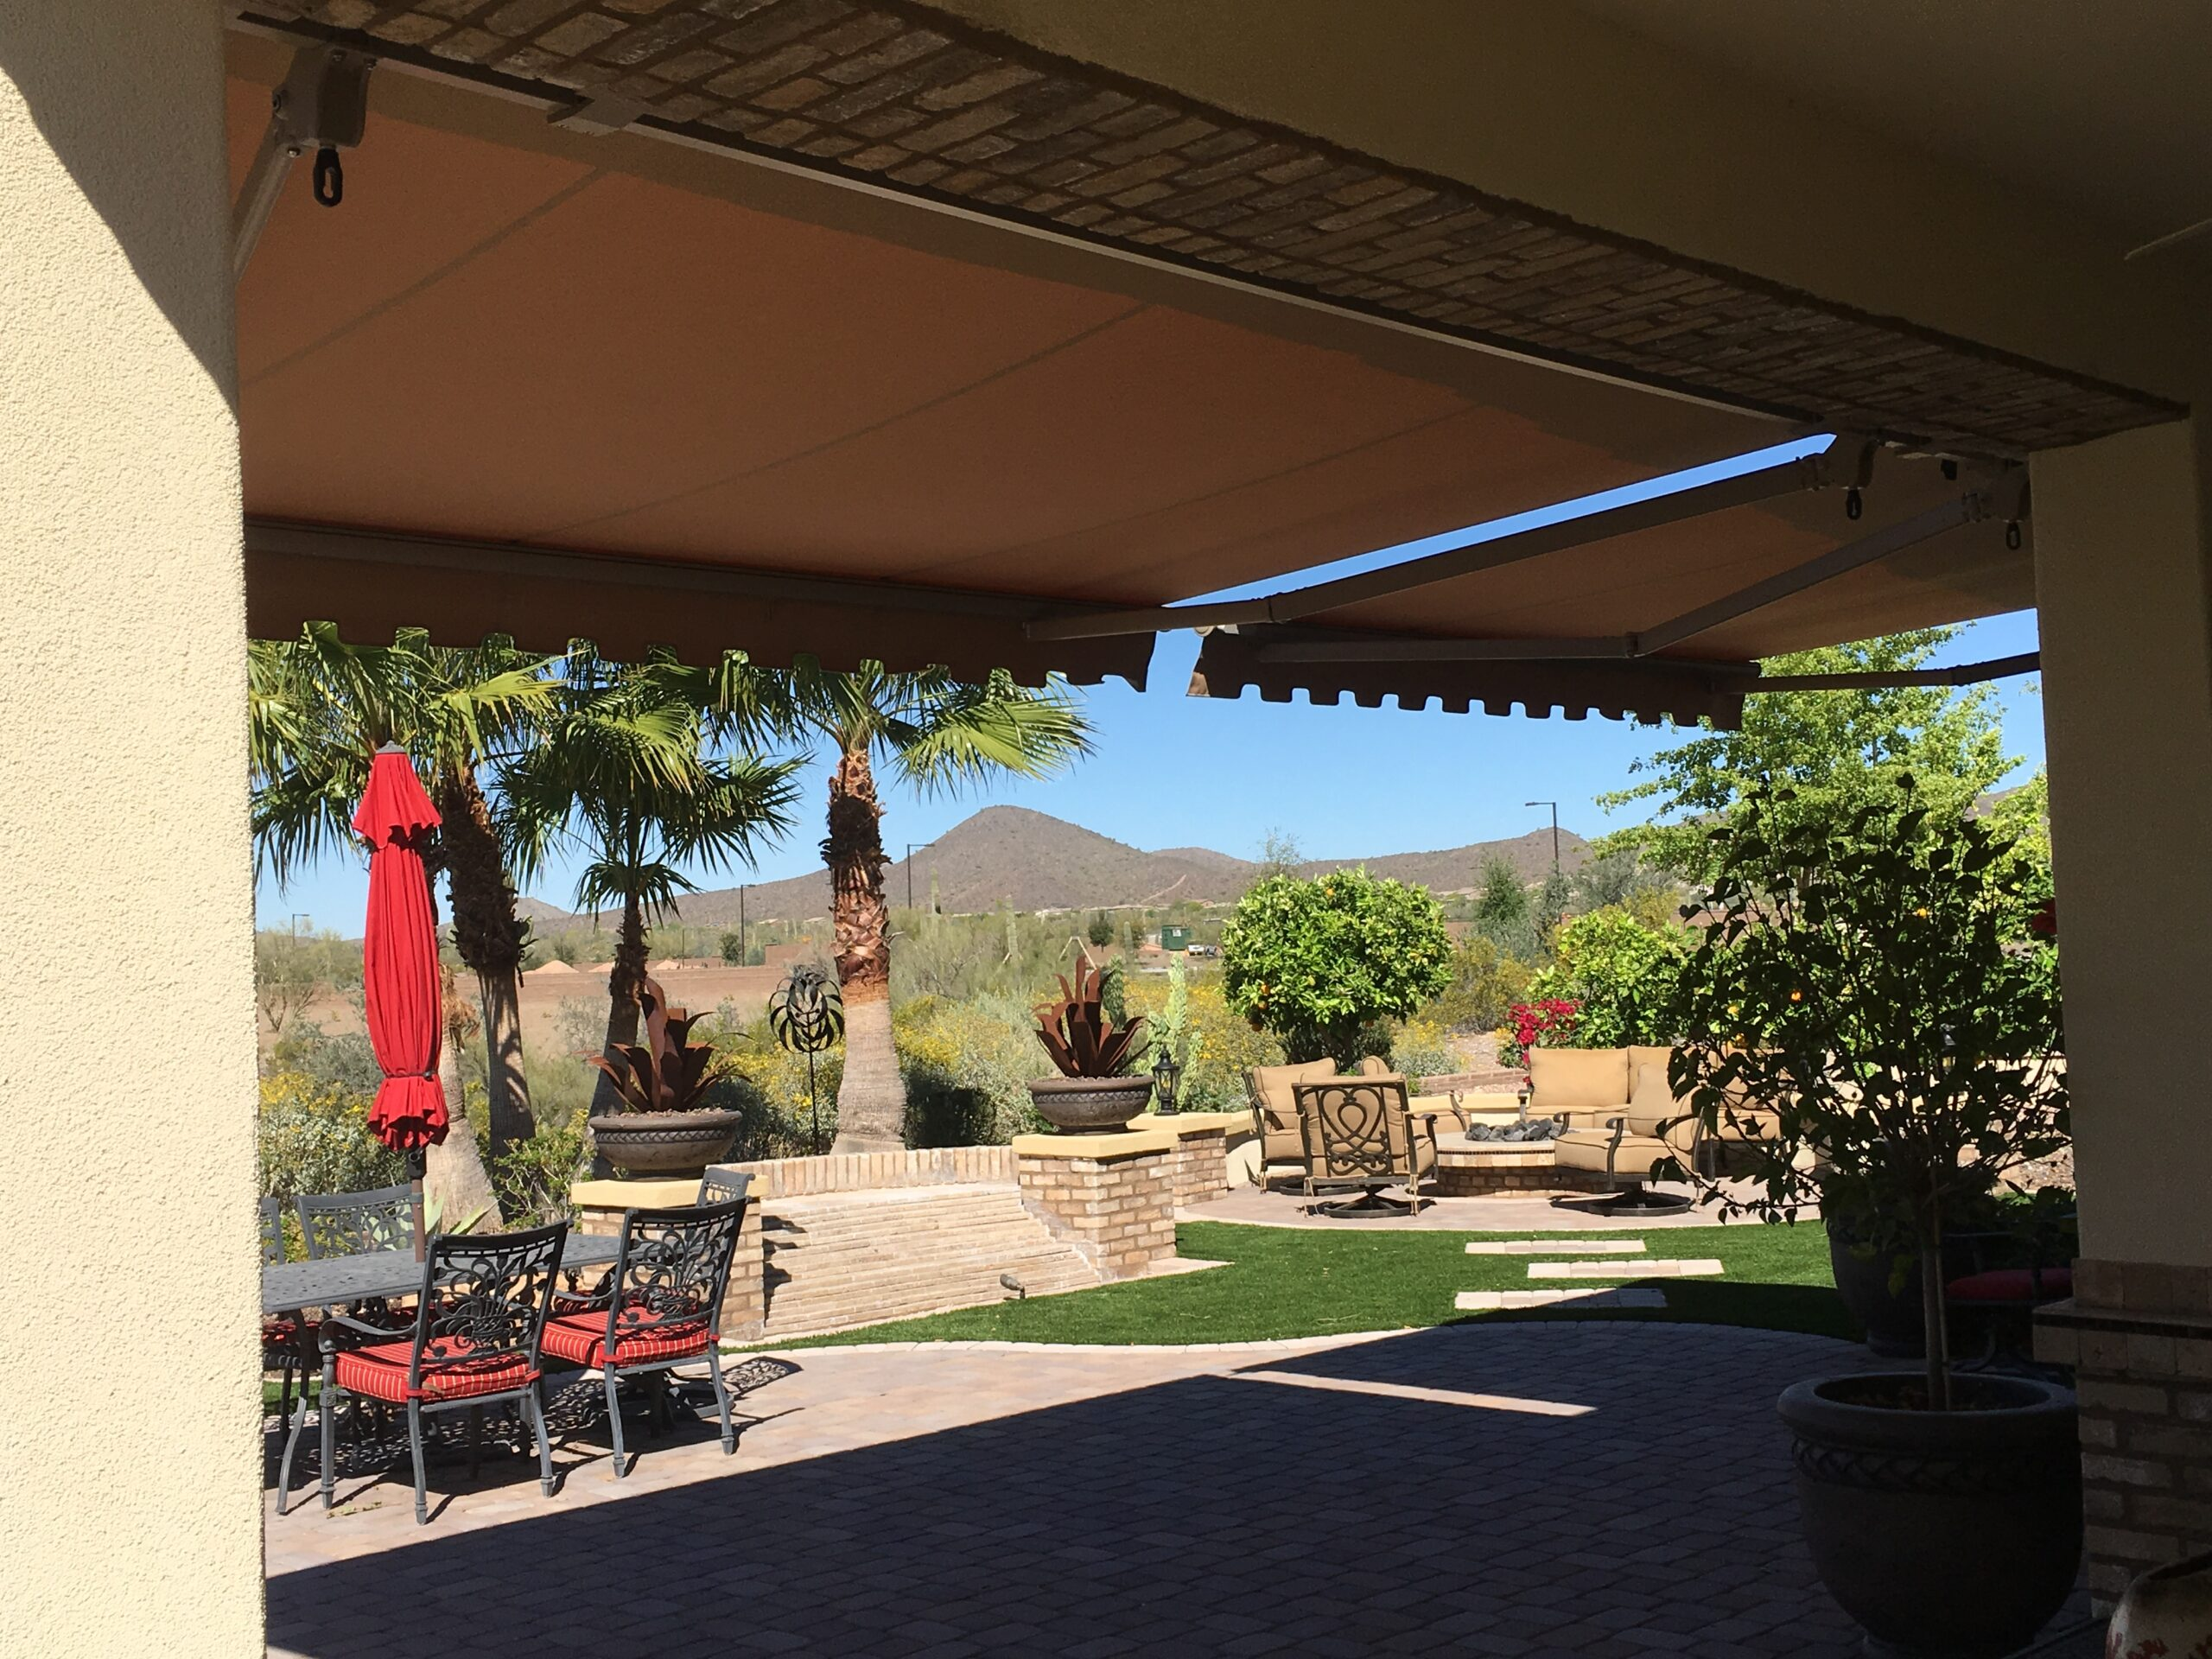 How to Pick the Right Retractable Awning